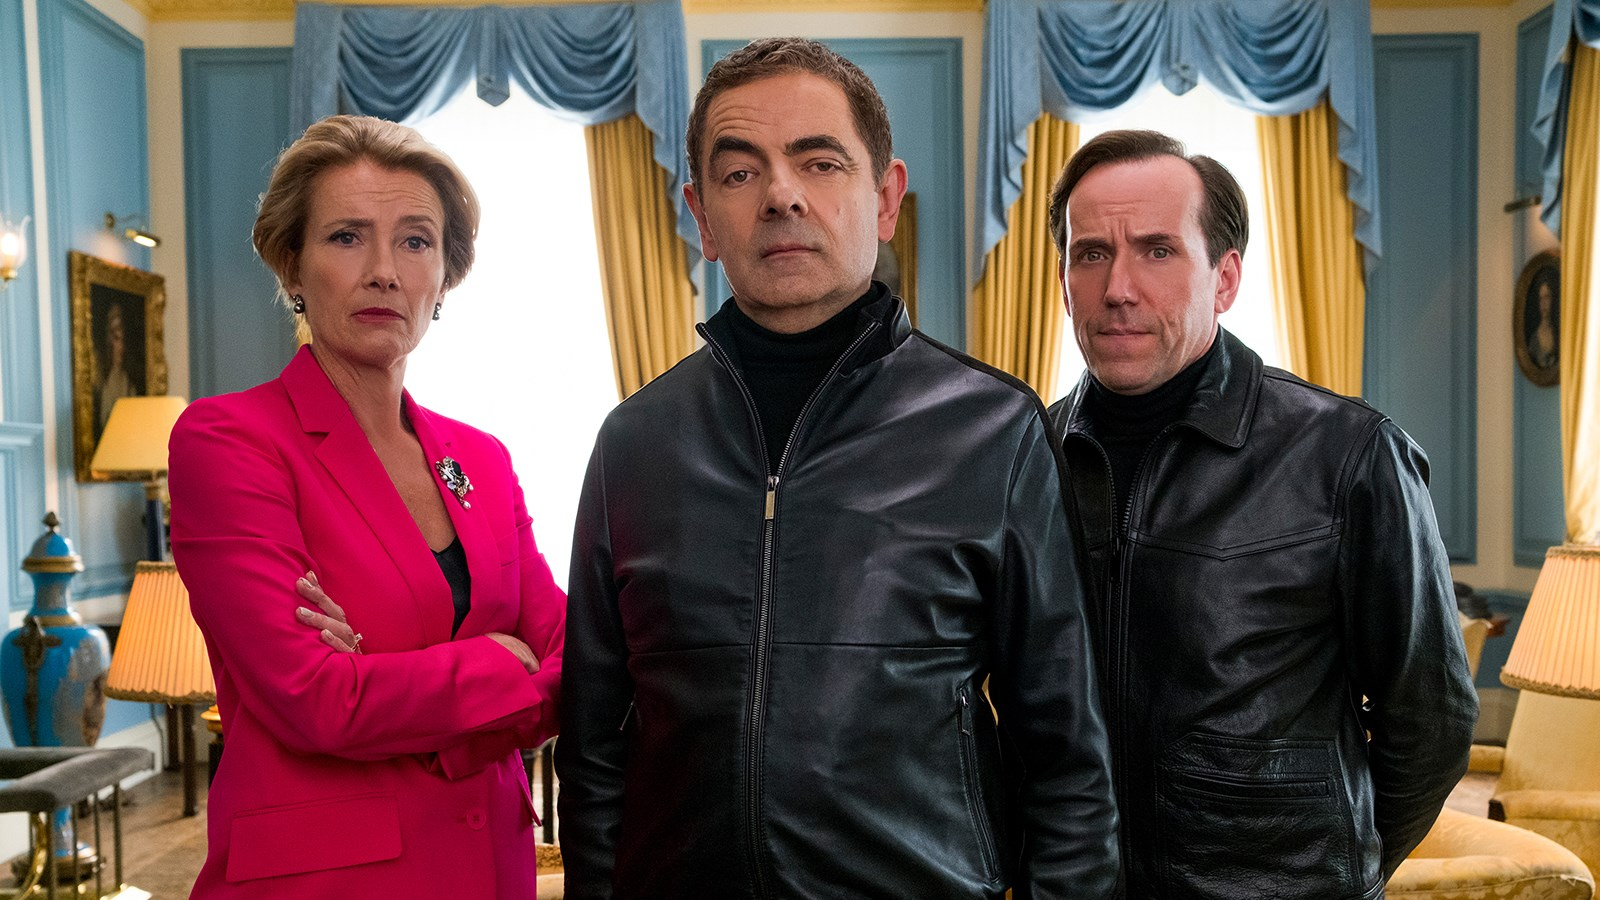 Johnny English Strikes Again: What You Need To Know